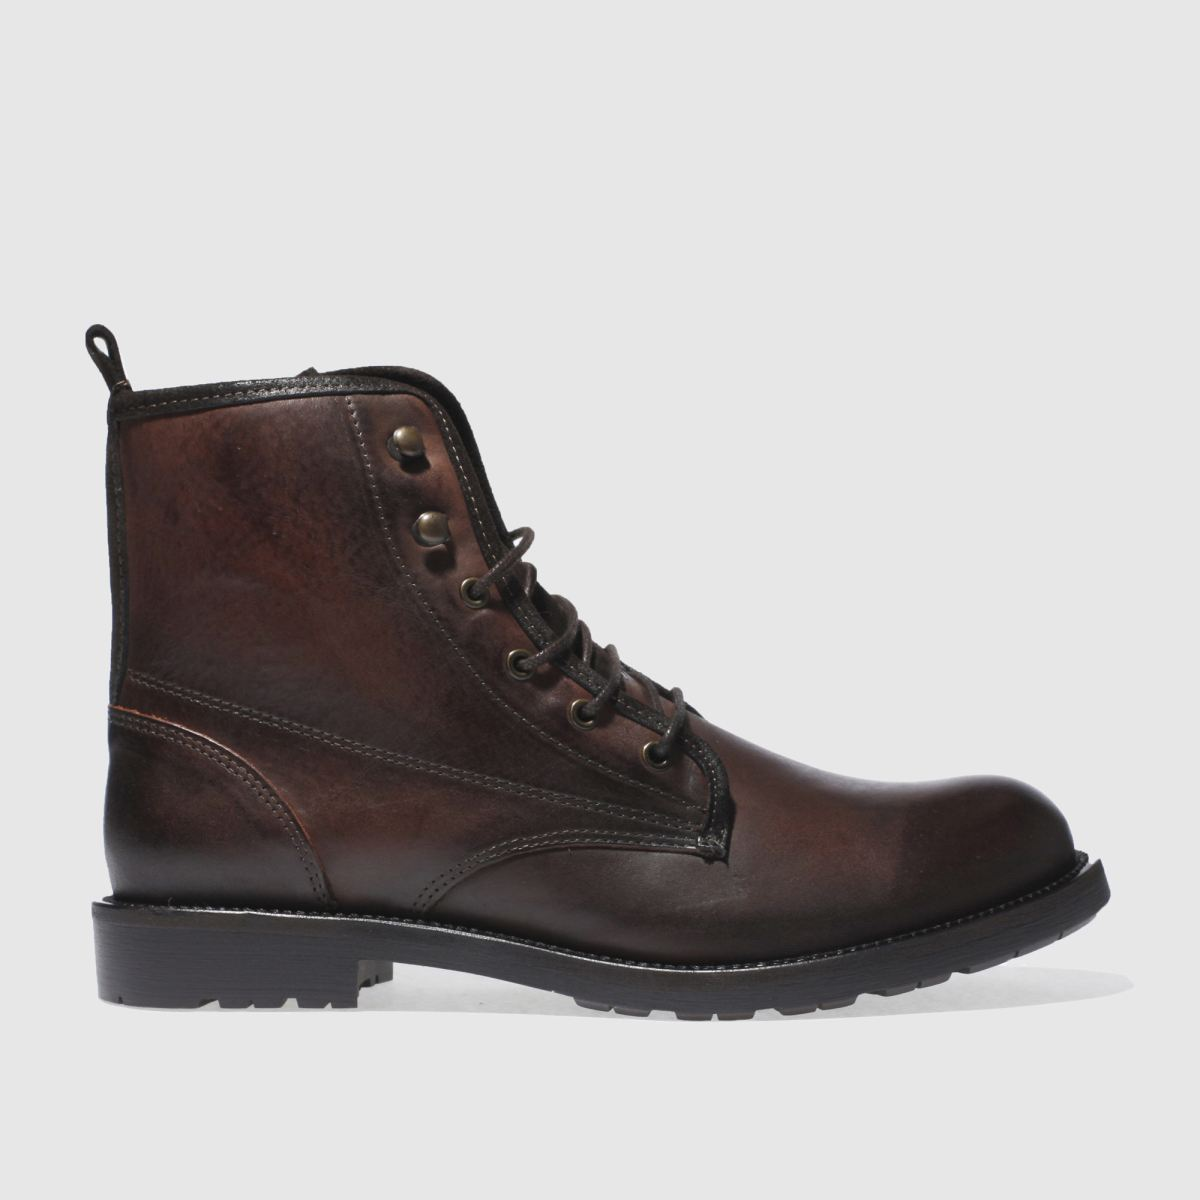 Schuh Brown Sewell Military Boot Boots